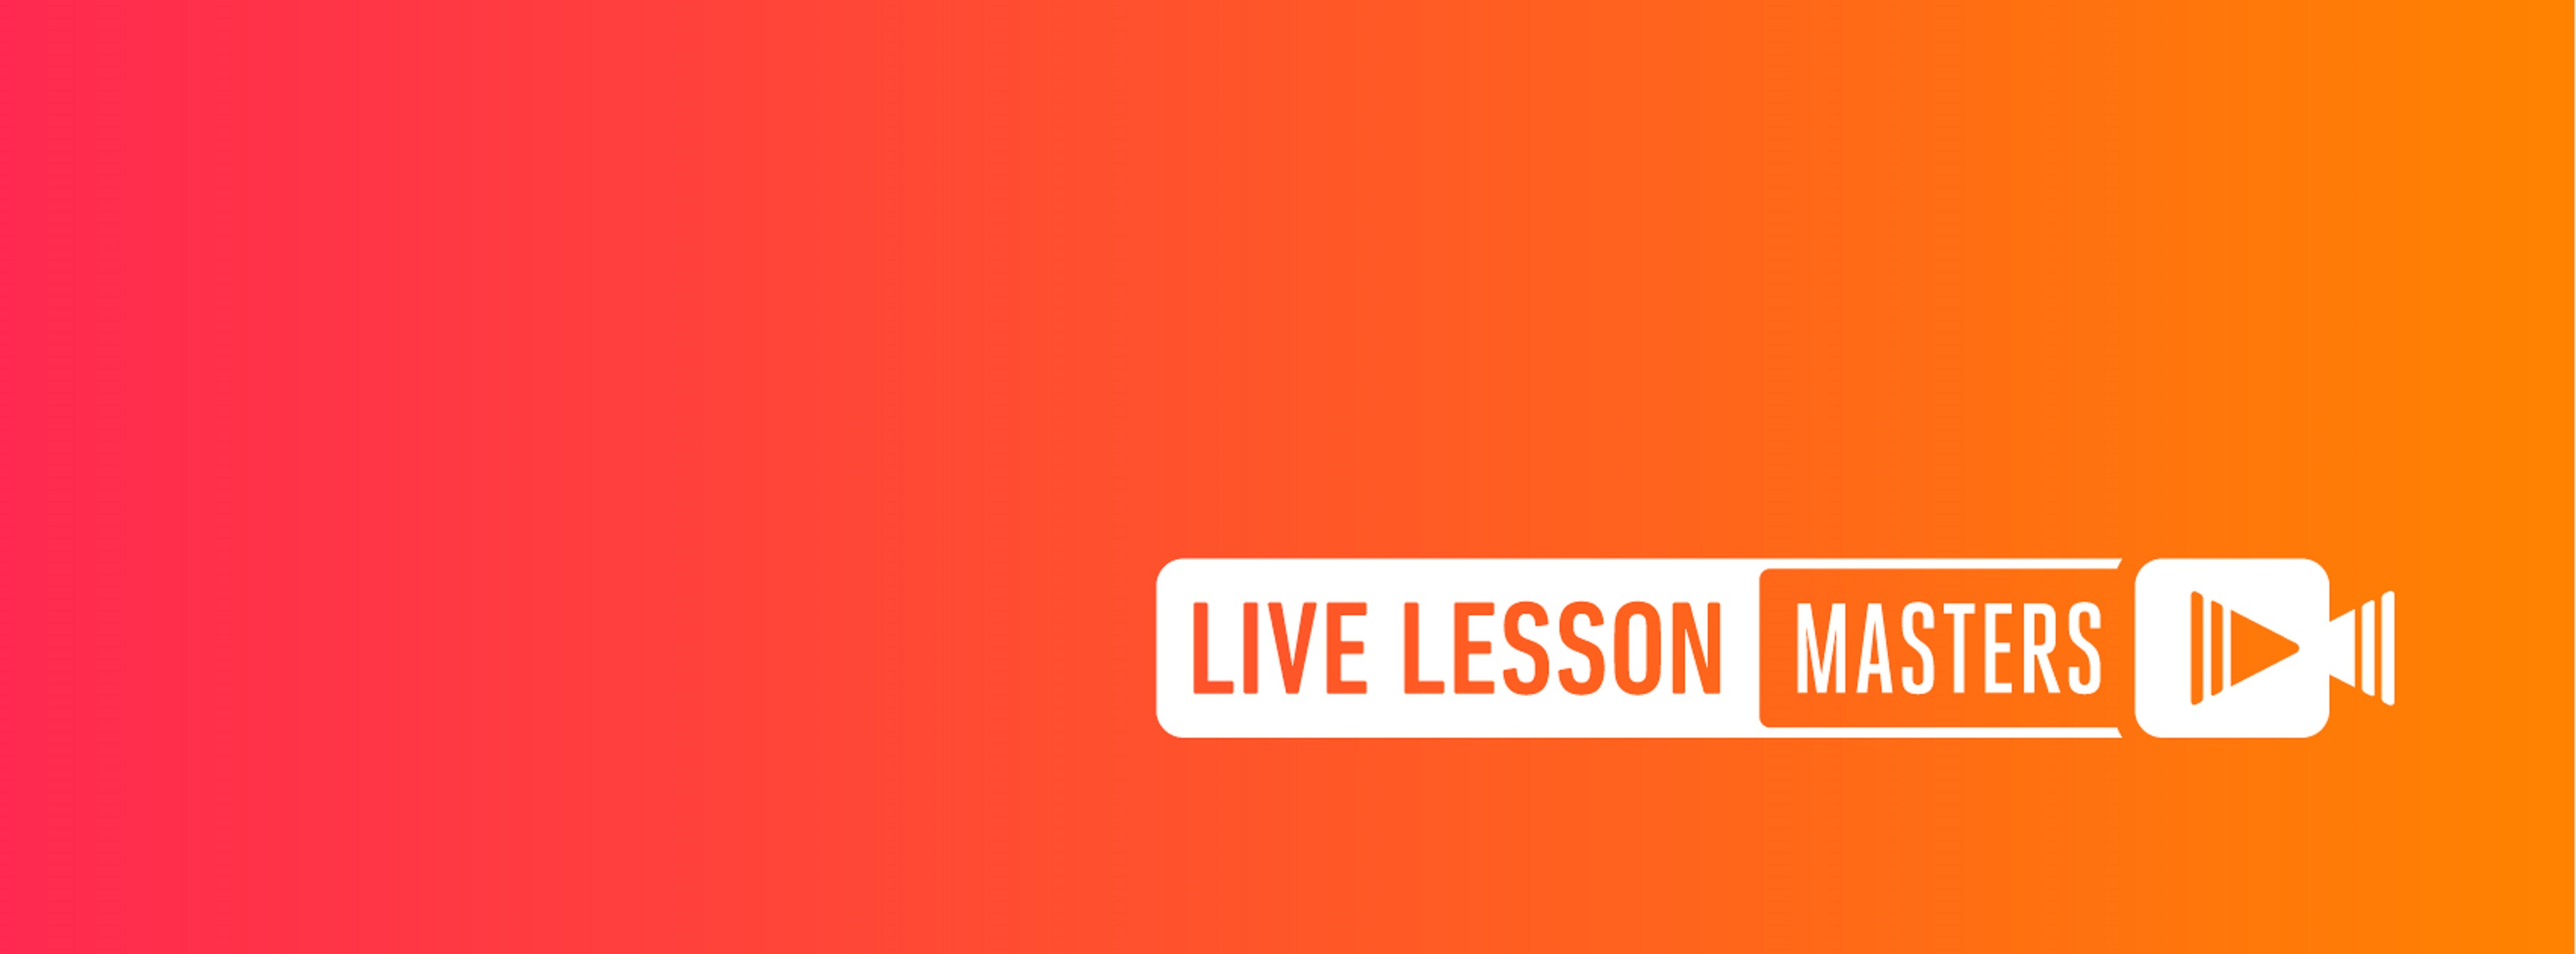 Live Lesson Masters Online Platform Debuts Today